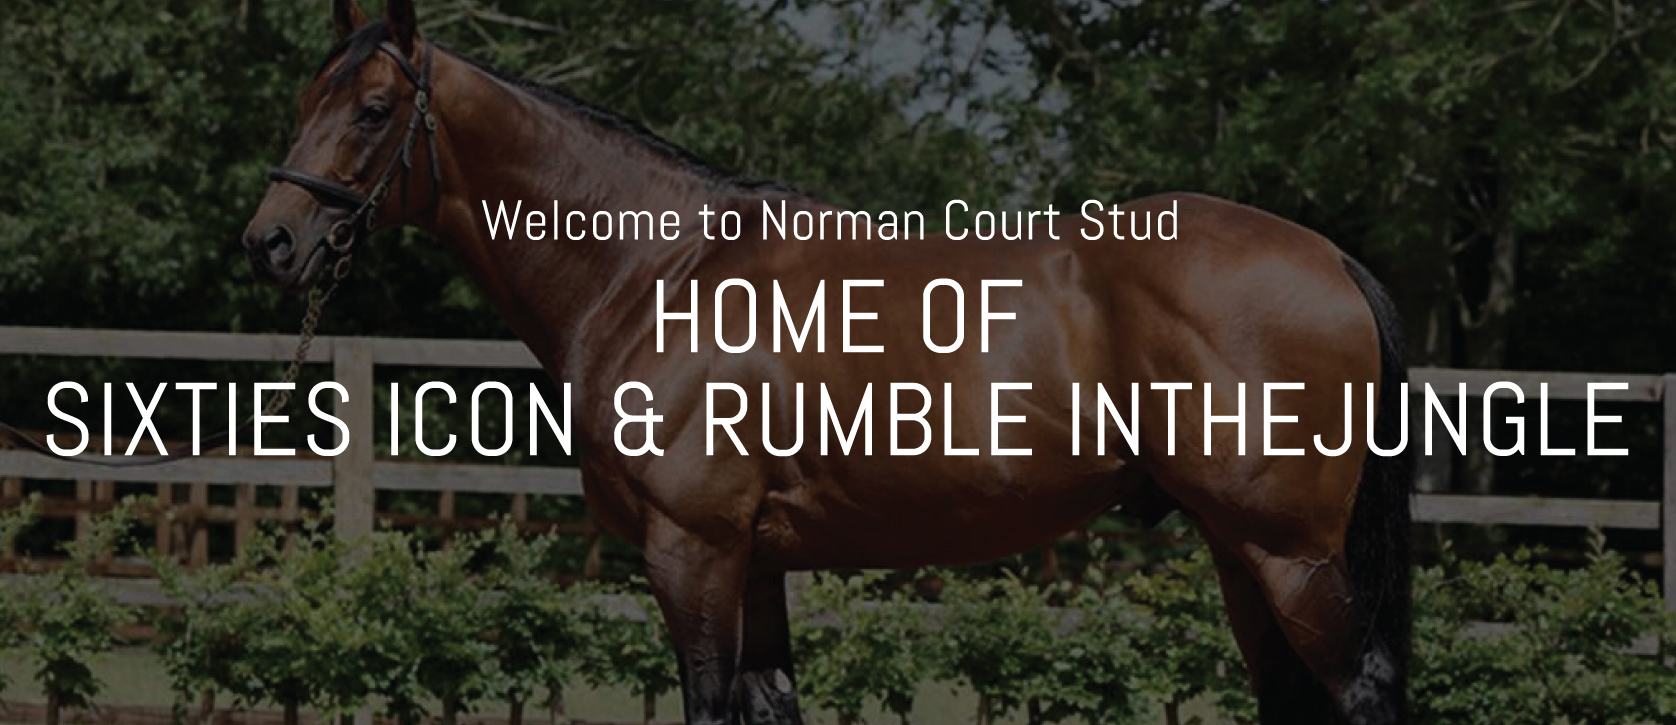 Welcome to Norman Court Stud